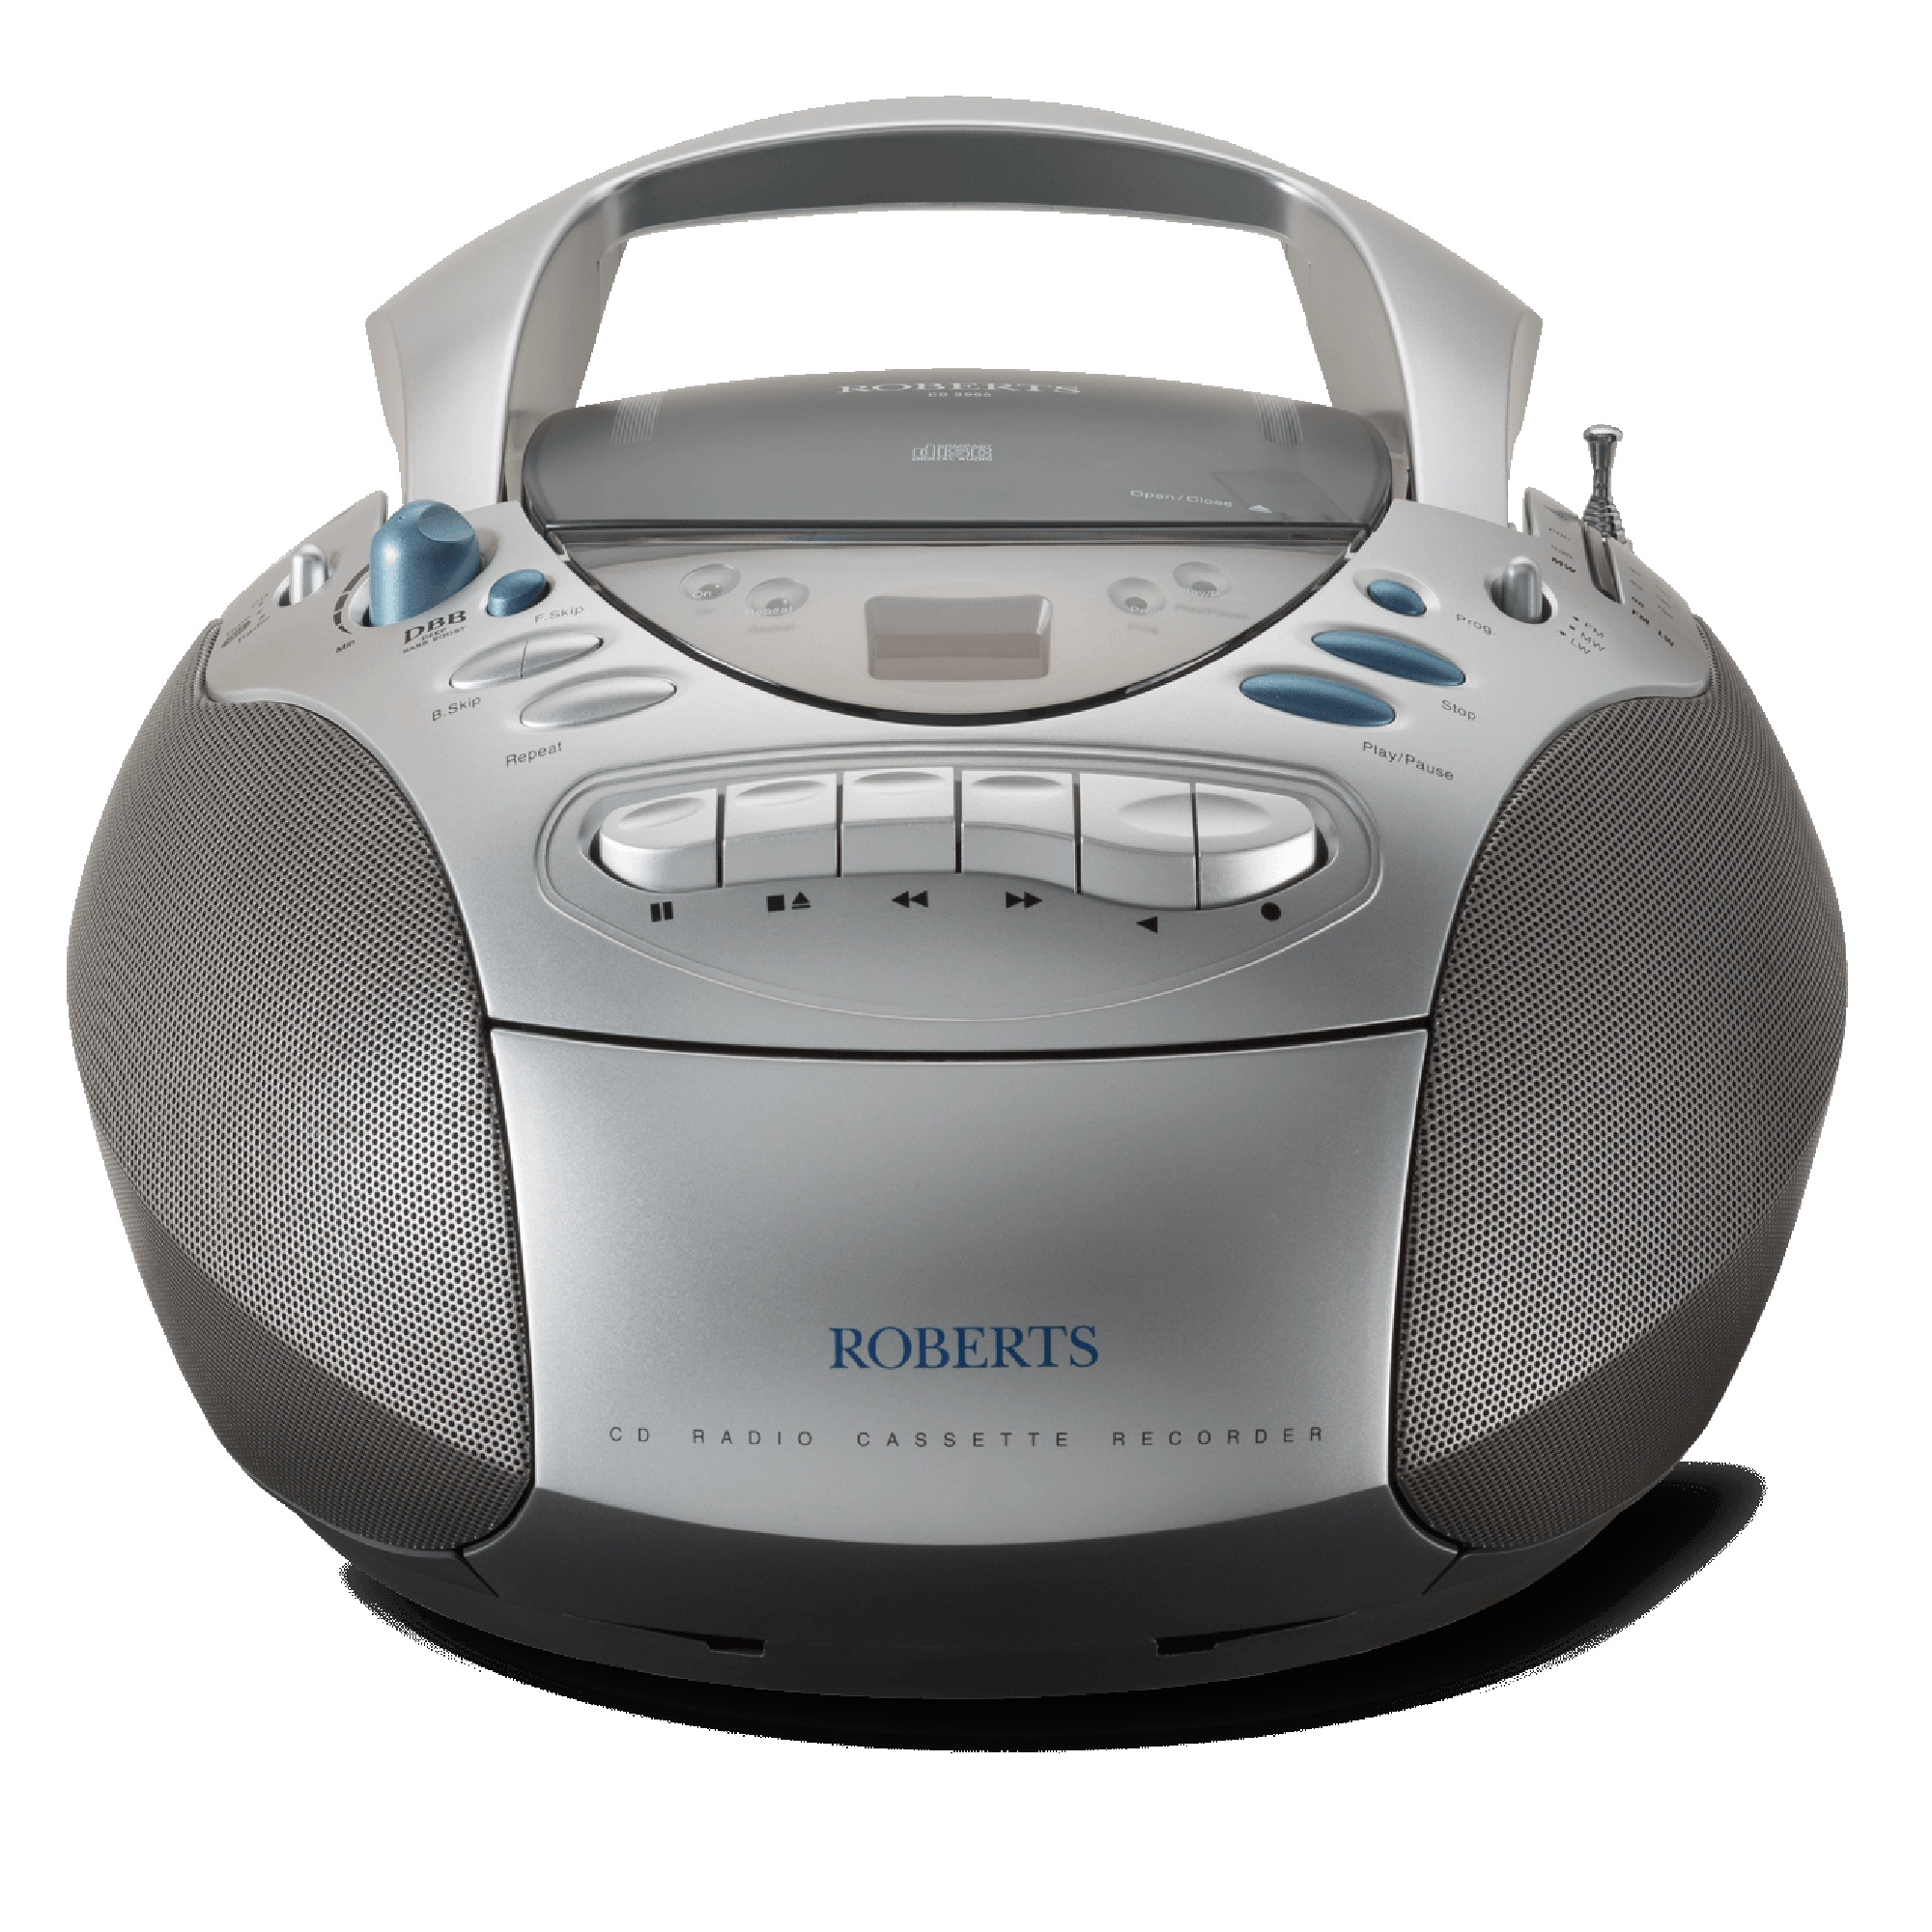 roberts radio cd9960 skylark radio cassette recorder with cd player ebay. Black Bedroom Furniture Sets. Home Design Ideas